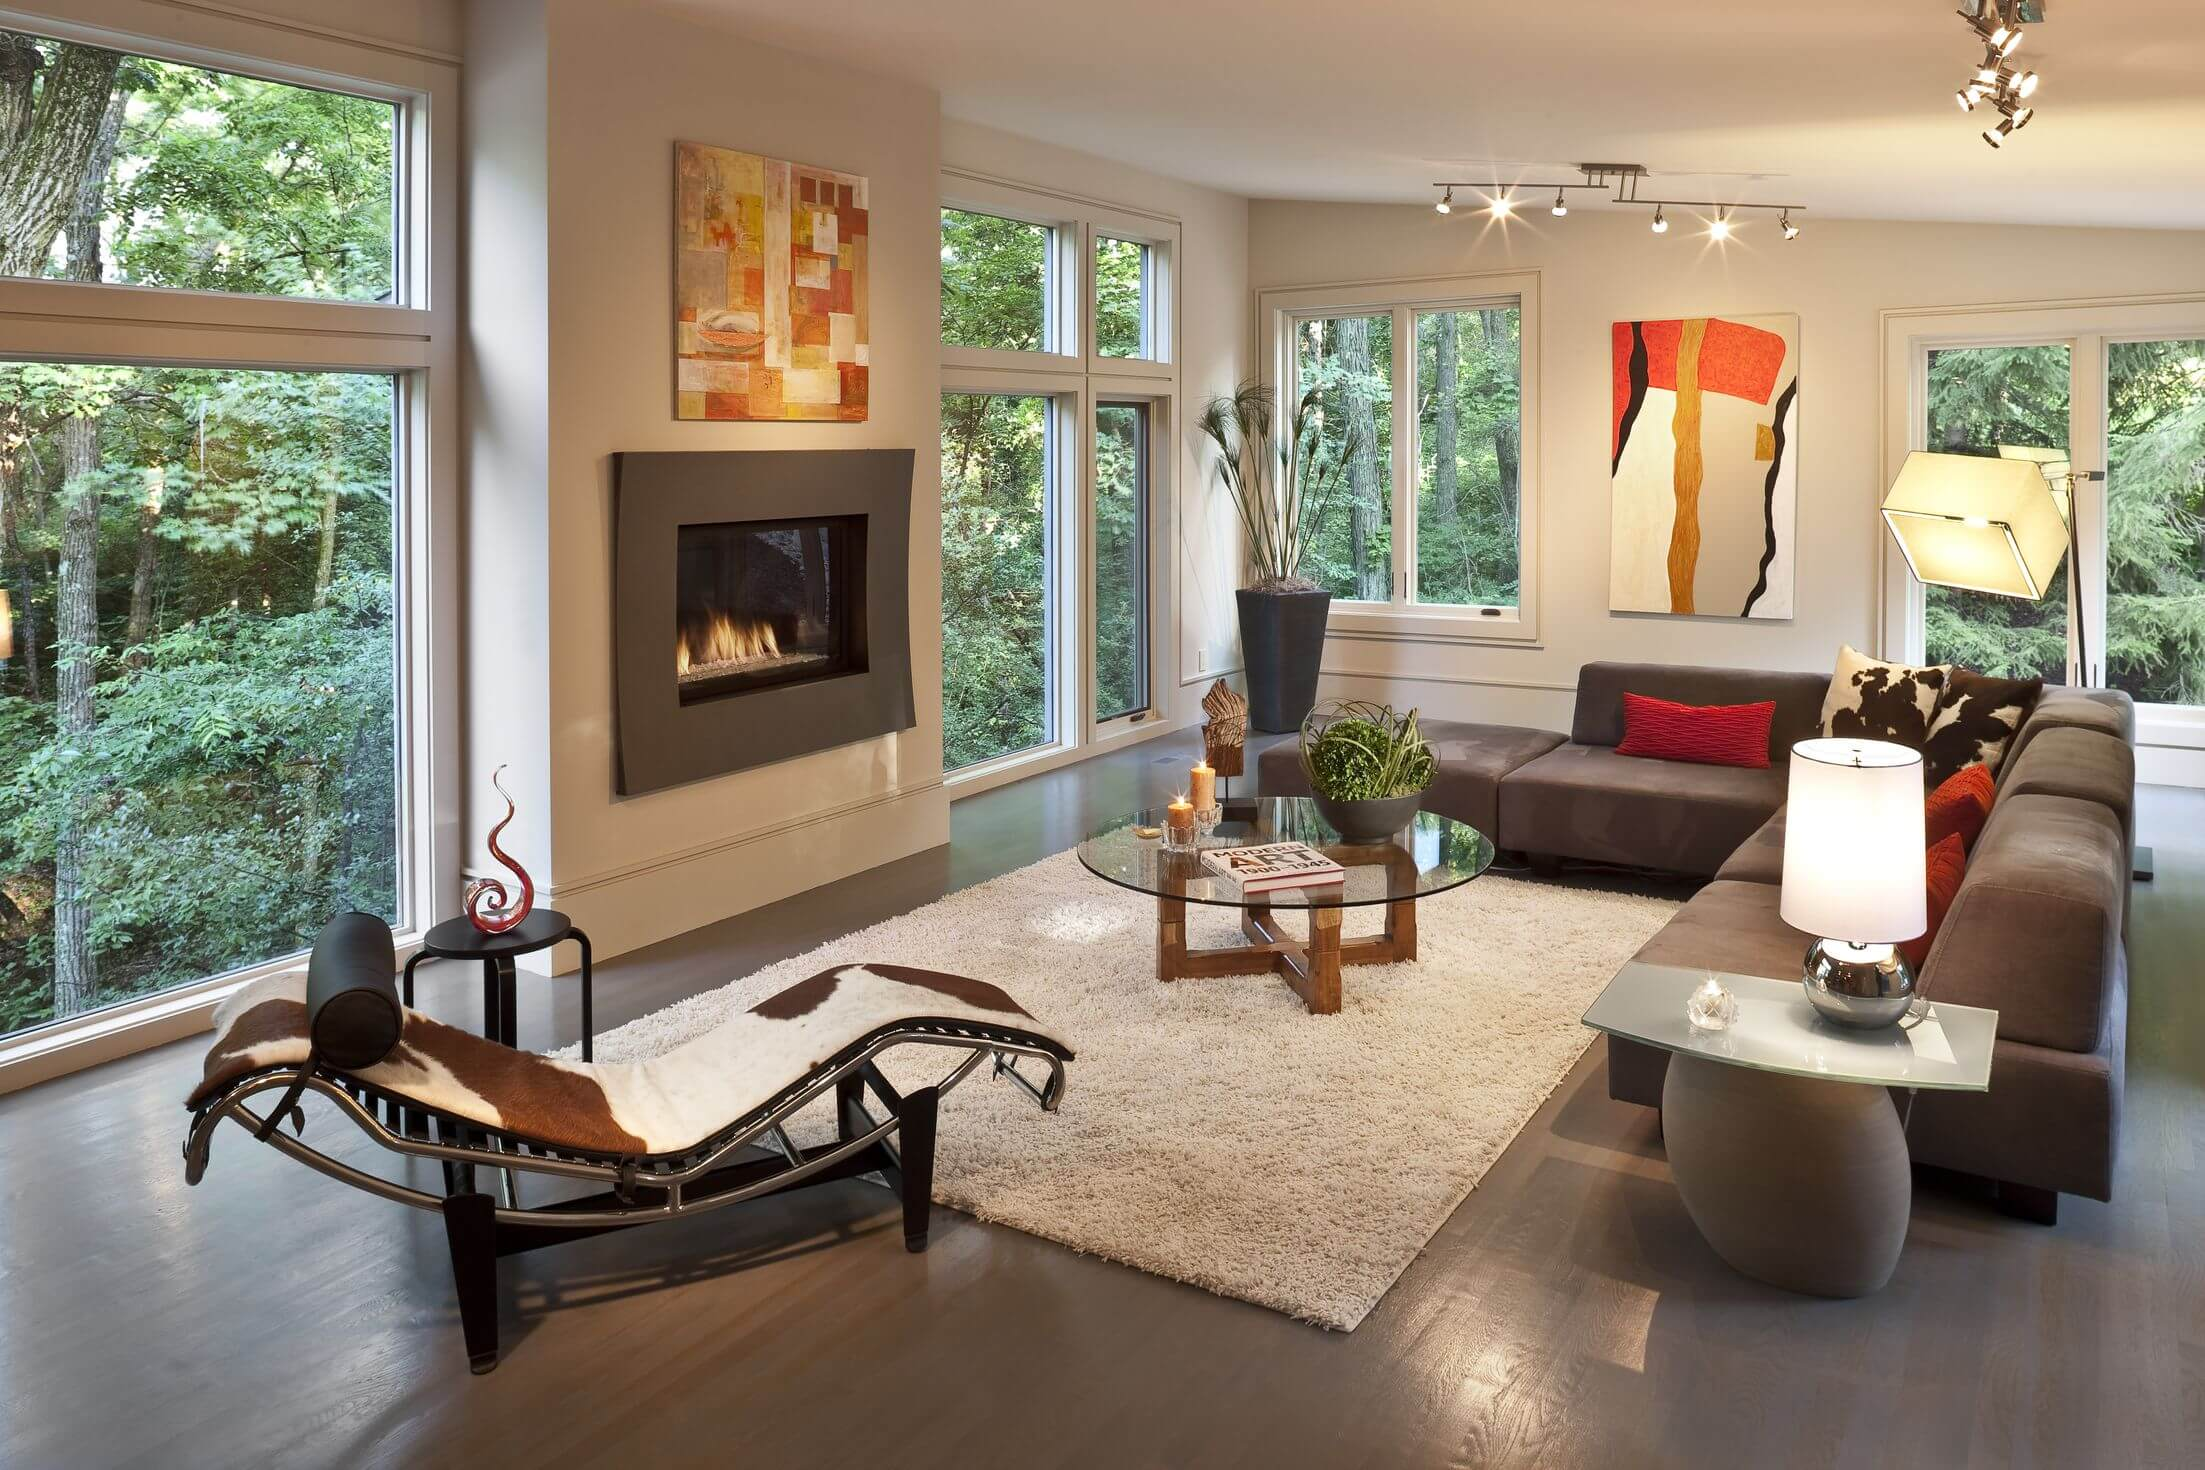 Great Sloped White Ceiling Over Dark Wood Flooring In This Living Room Holding  Modern Armless Brown Sofa